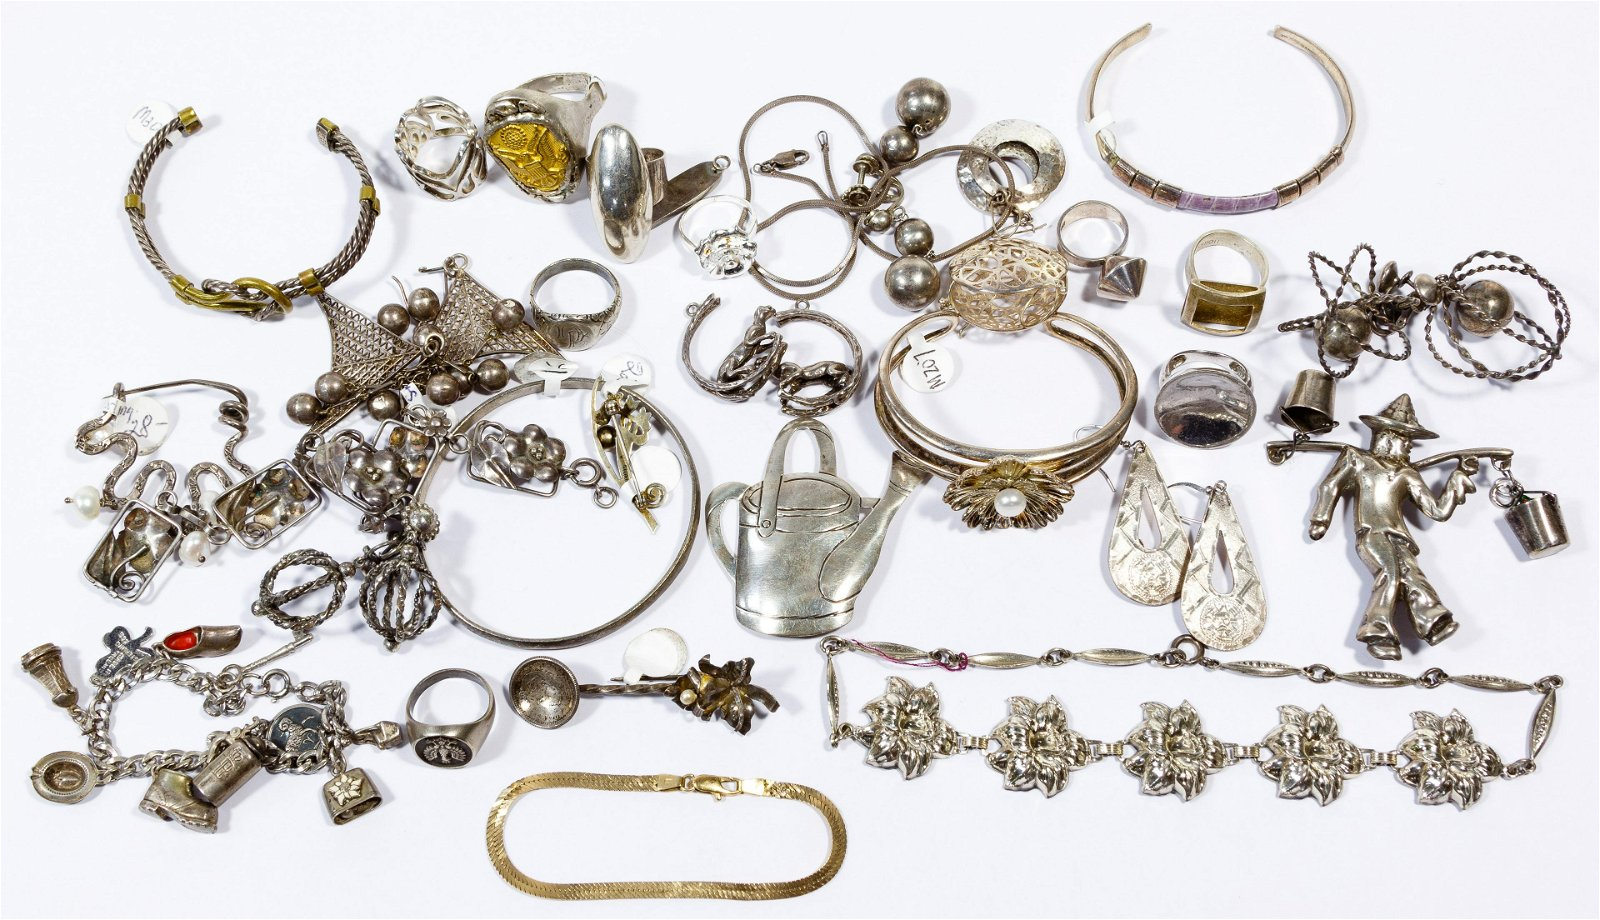 14k Gold and Mixed Silver Jewelry Assortment